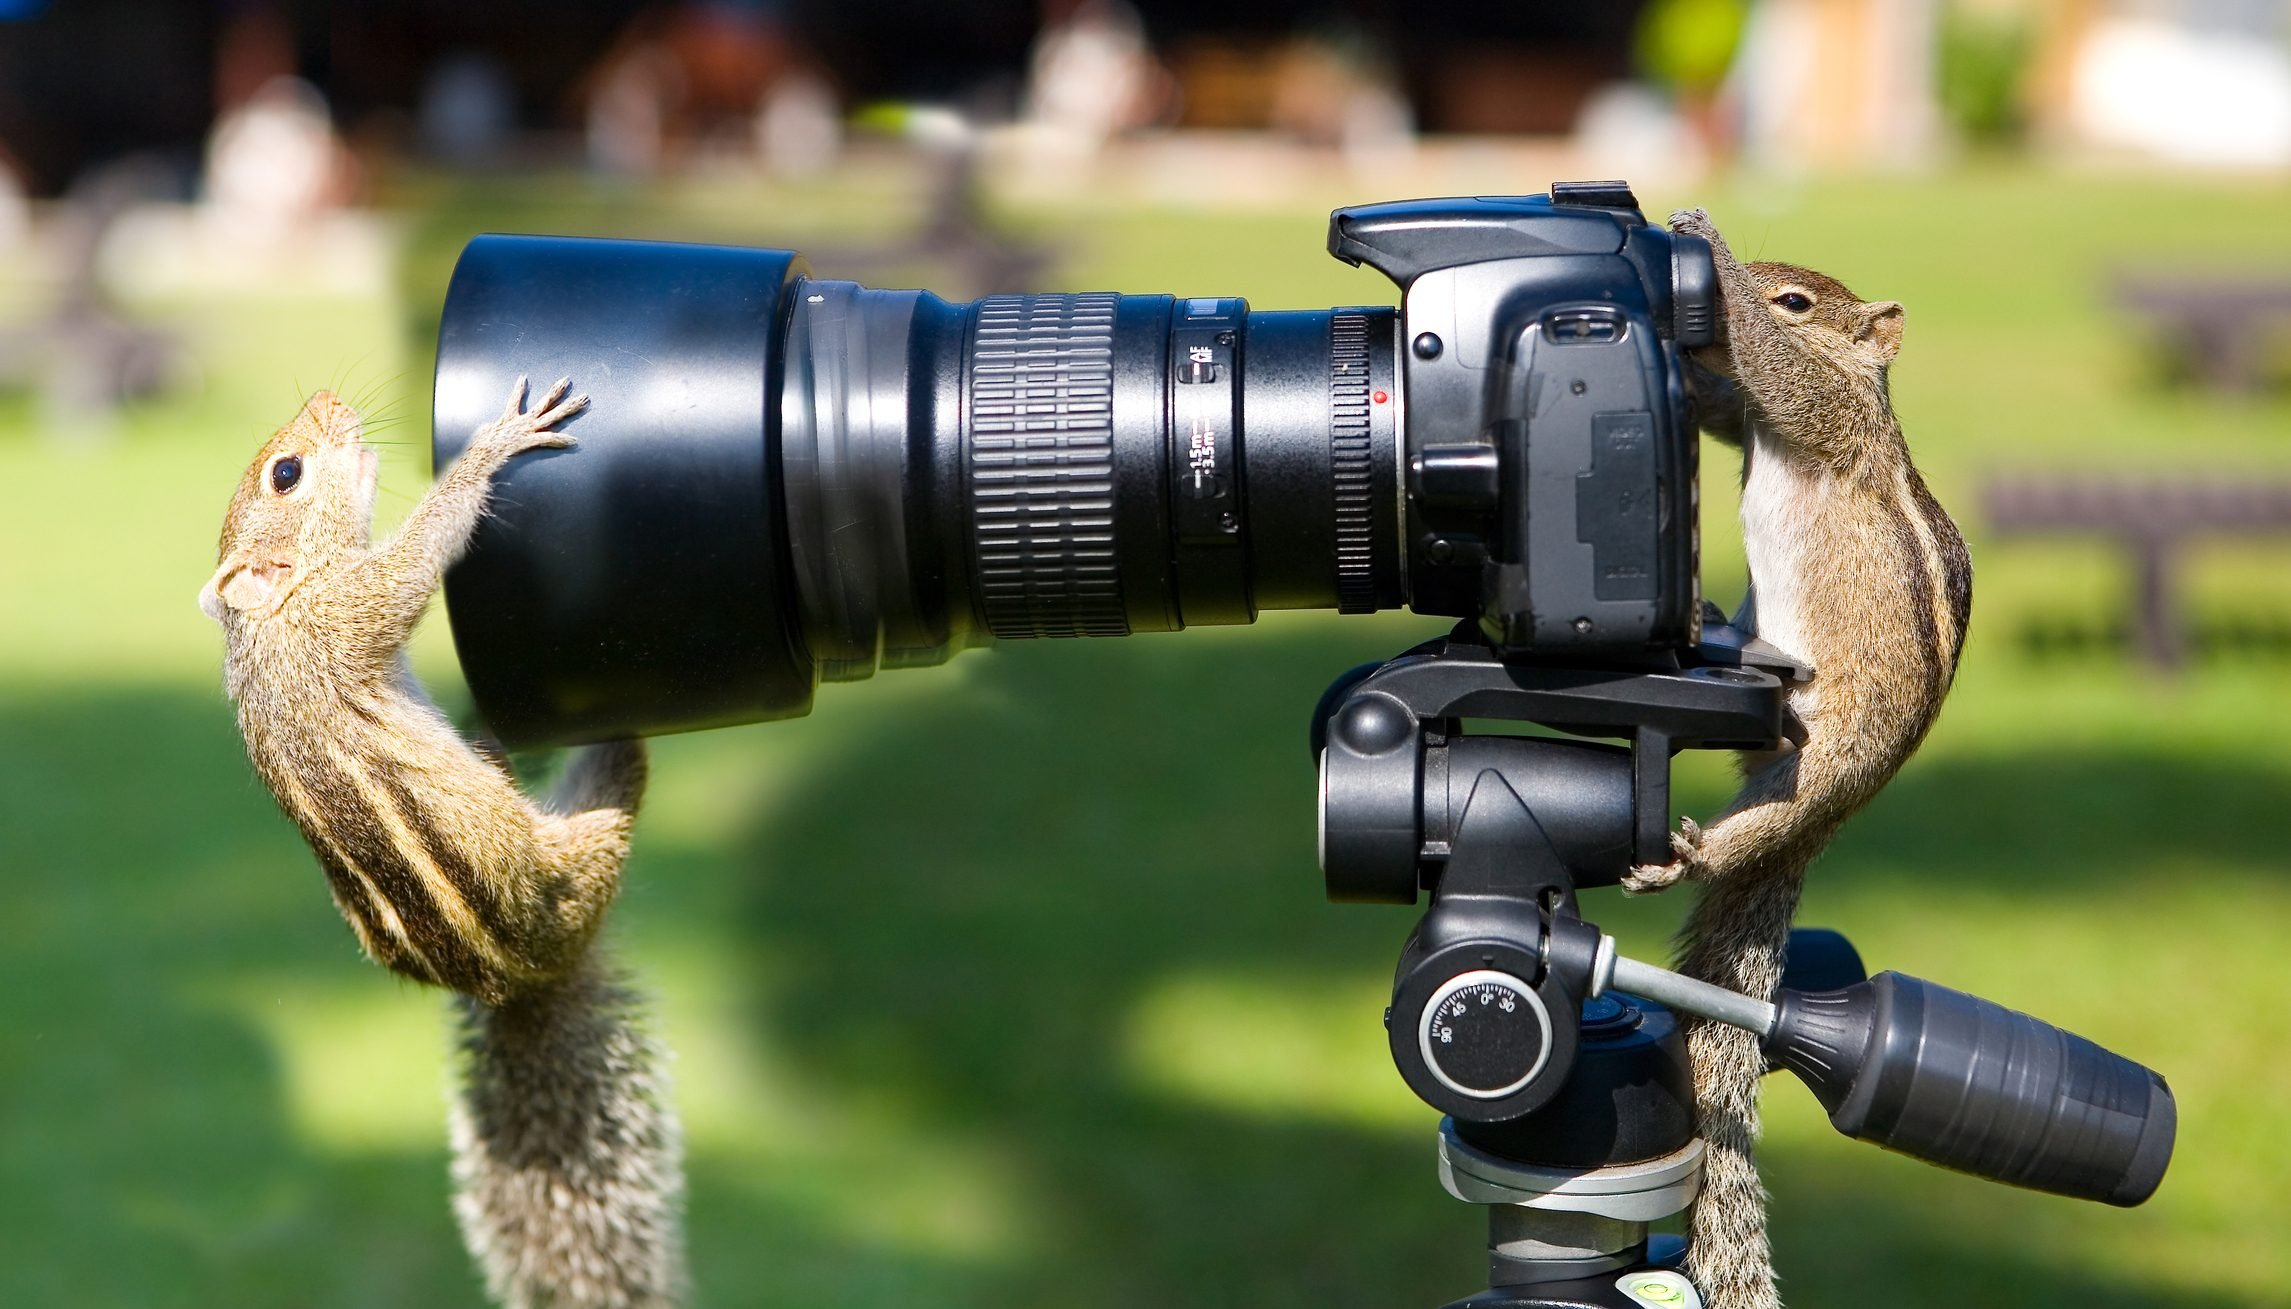 Palm squirrels staged a photo shoot.